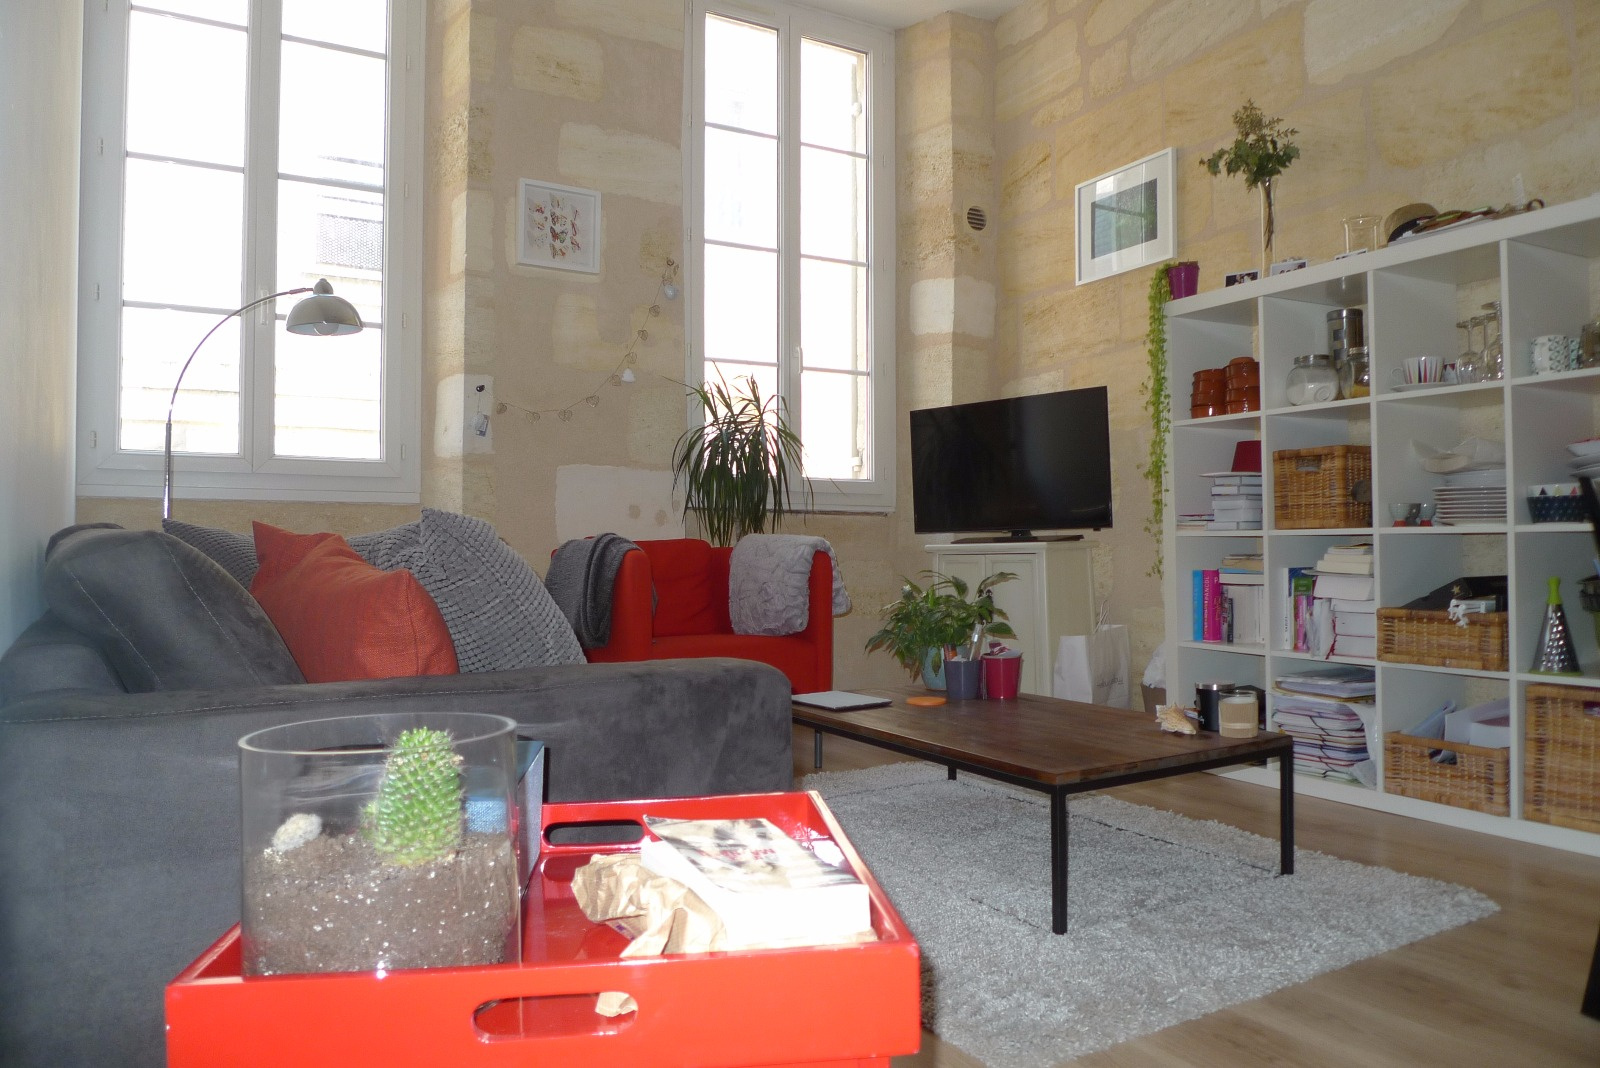 J 39 habite en ville l 39 immobilier bordeaux saint pierre for Appartement bordeaux quartier saint pierre